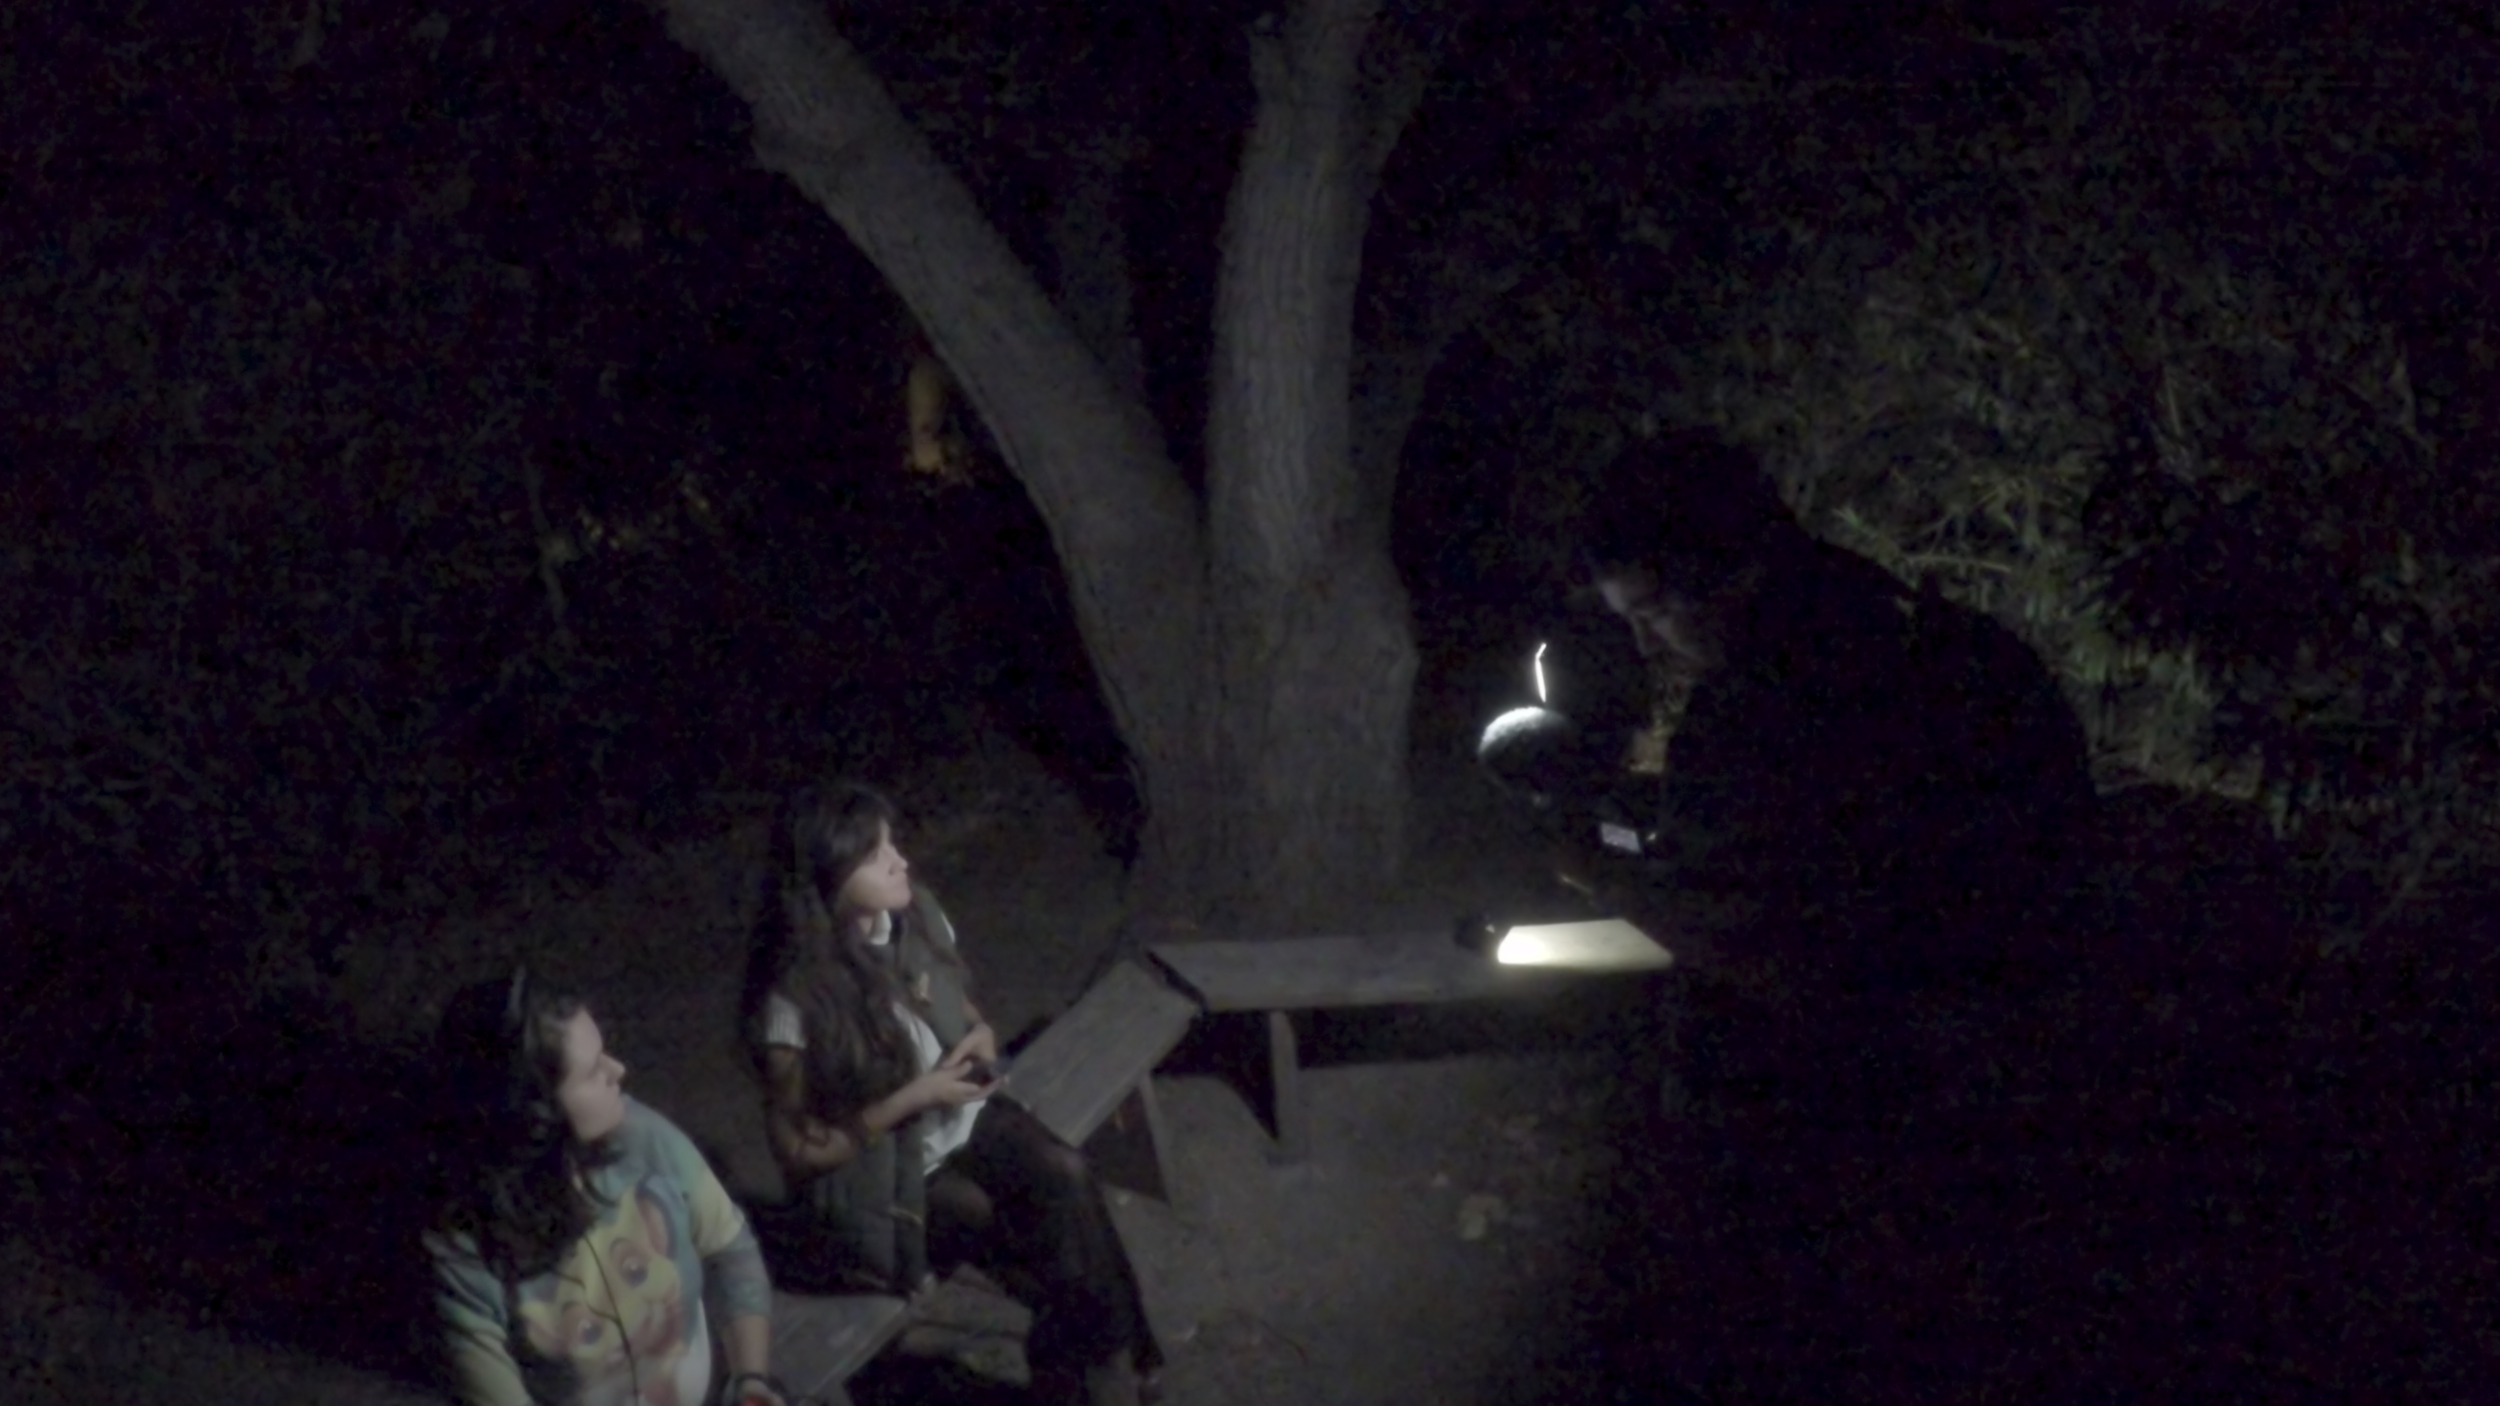 We held an EVP Session with a paranormal investigator.